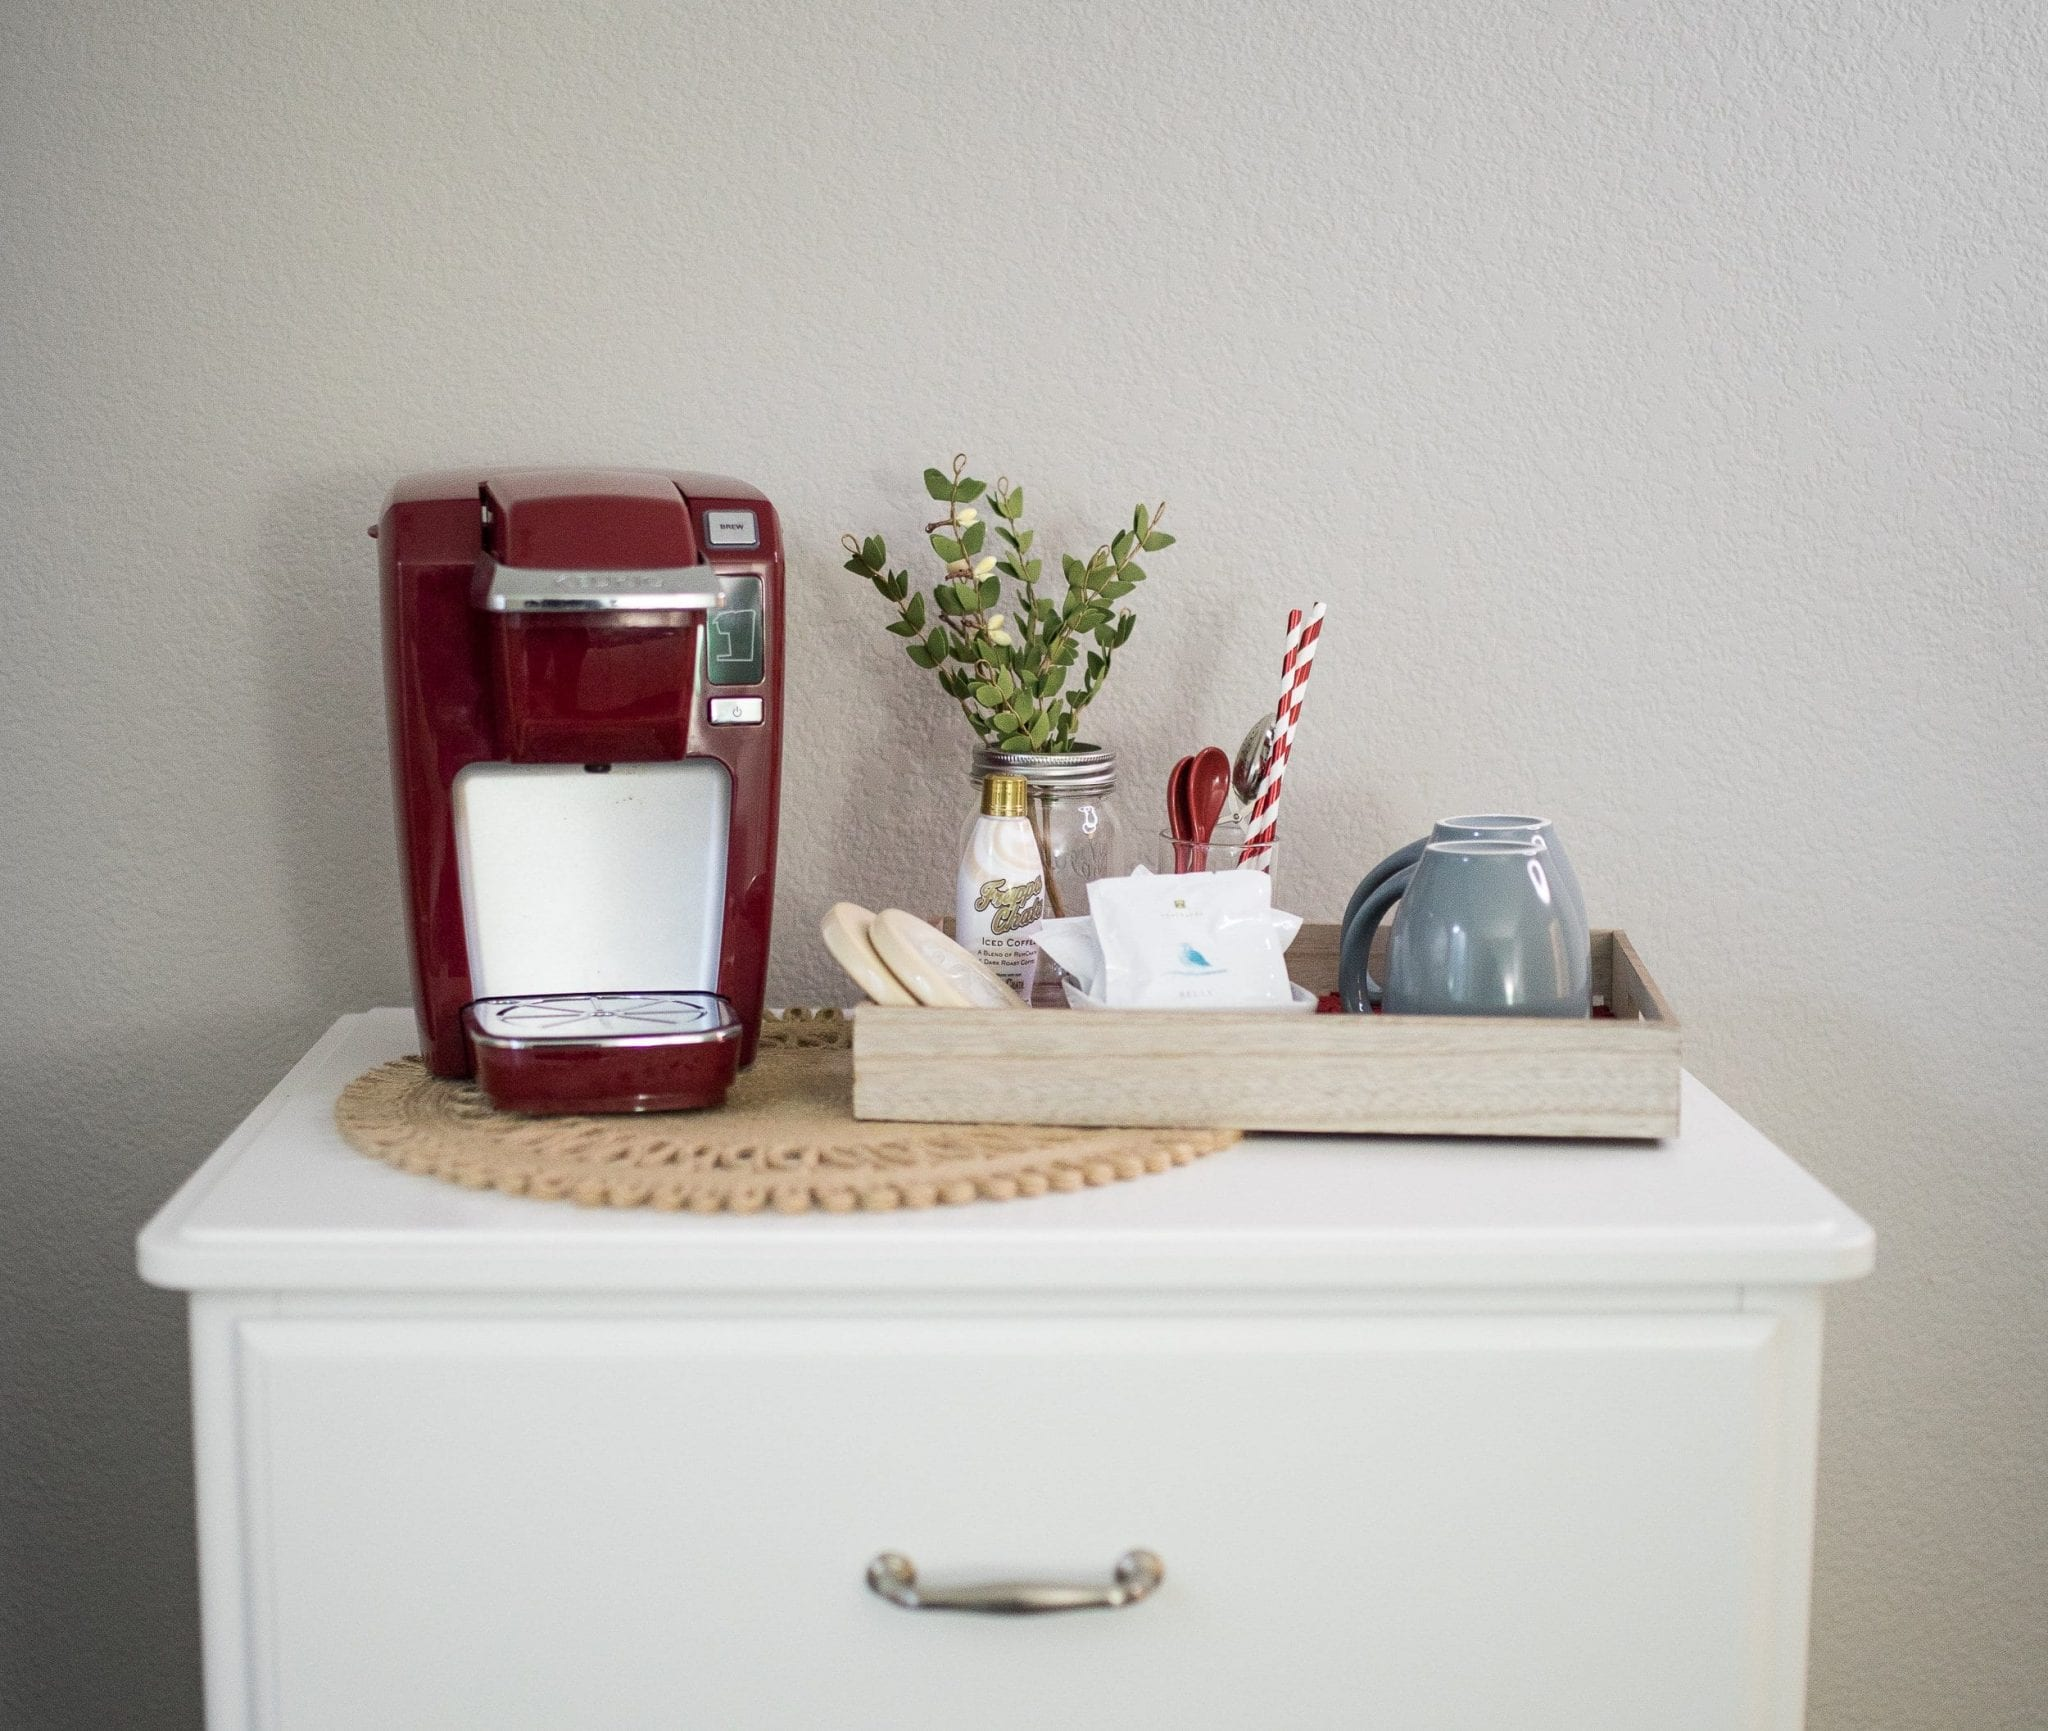 guest bedroom coffee bar | holiday guest bedroom decor | guest bedroom coffee station holiday | christmas decor for guest room | holiday decor christmas | never skip brunch by cara newhart #decor #christmas #holiday #coffeebar